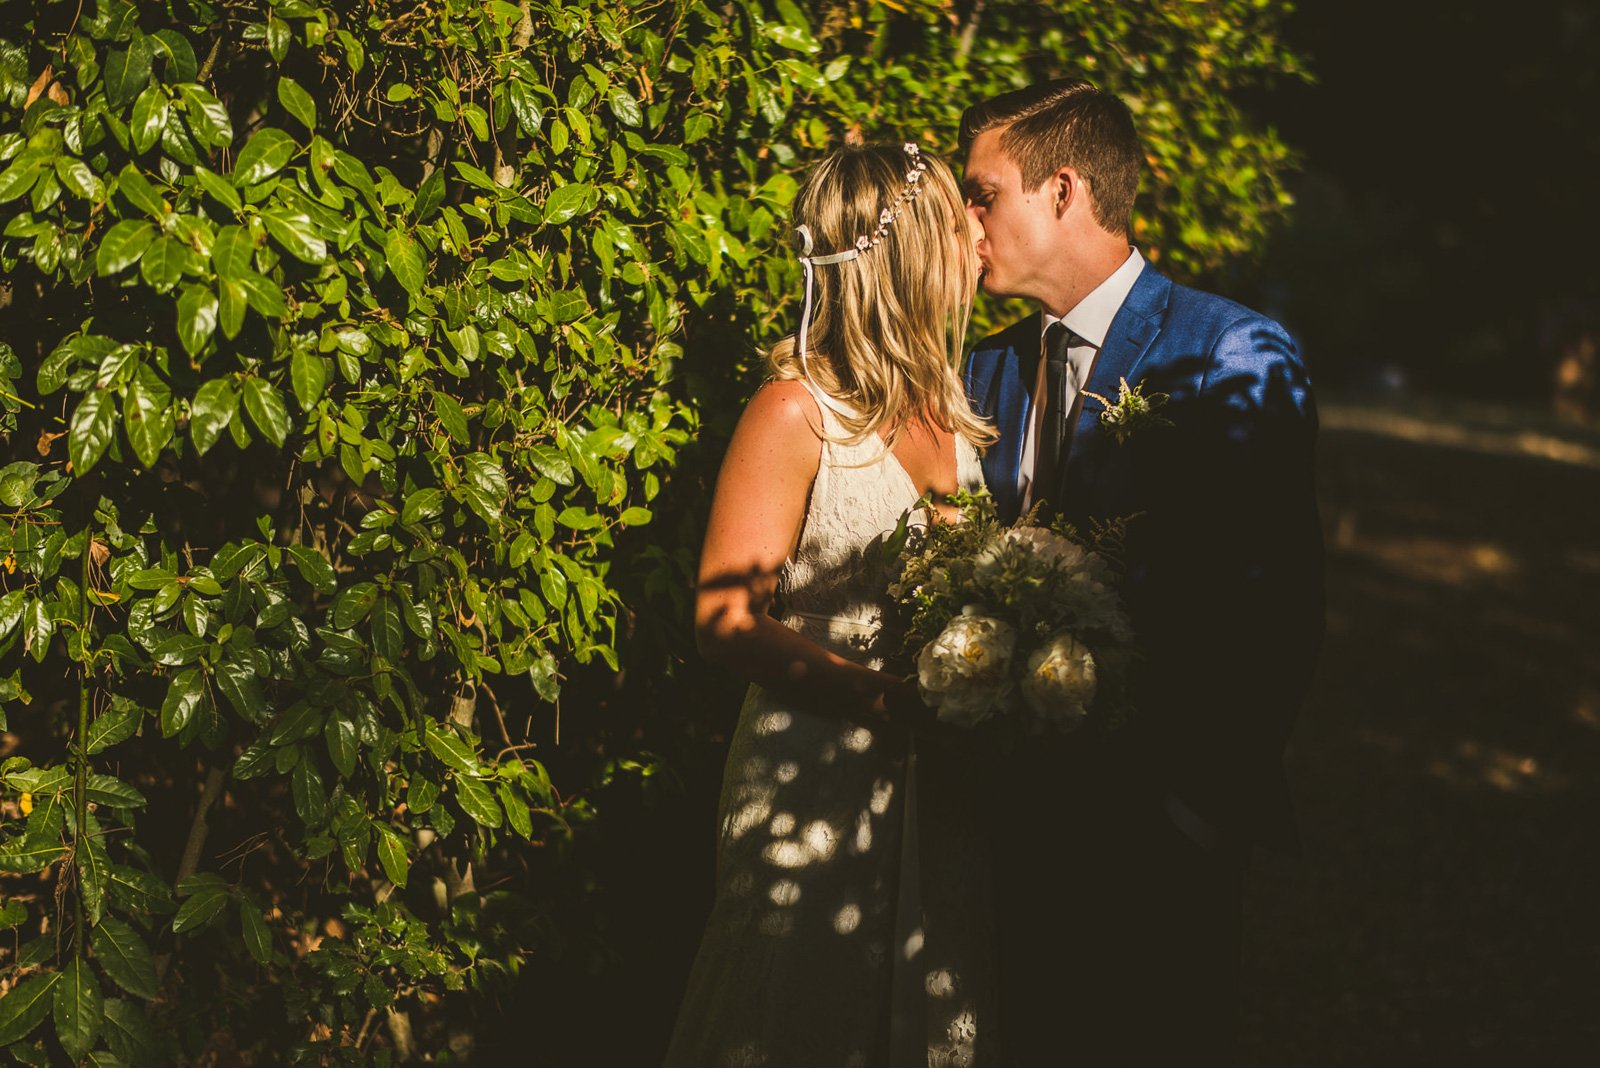 A+L Wedding at Montechiaro, Siena by Federico Pannacci 69